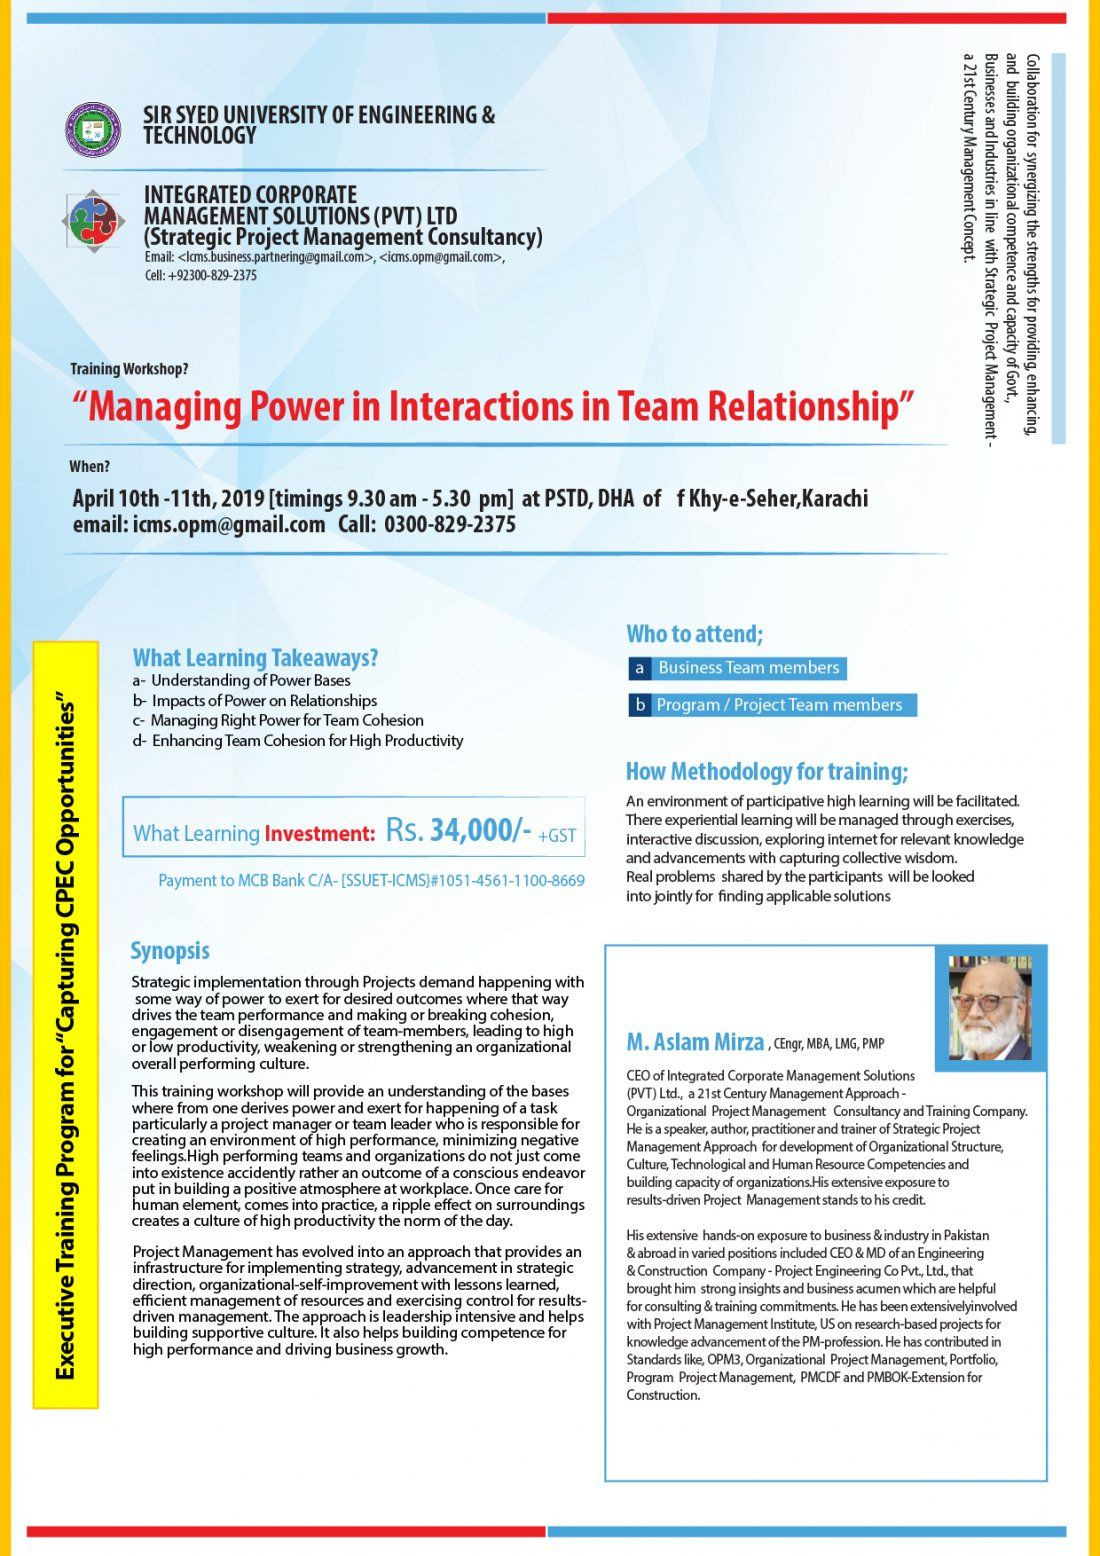 Training Workshop - Managing Power in Interaction in Team Relationship